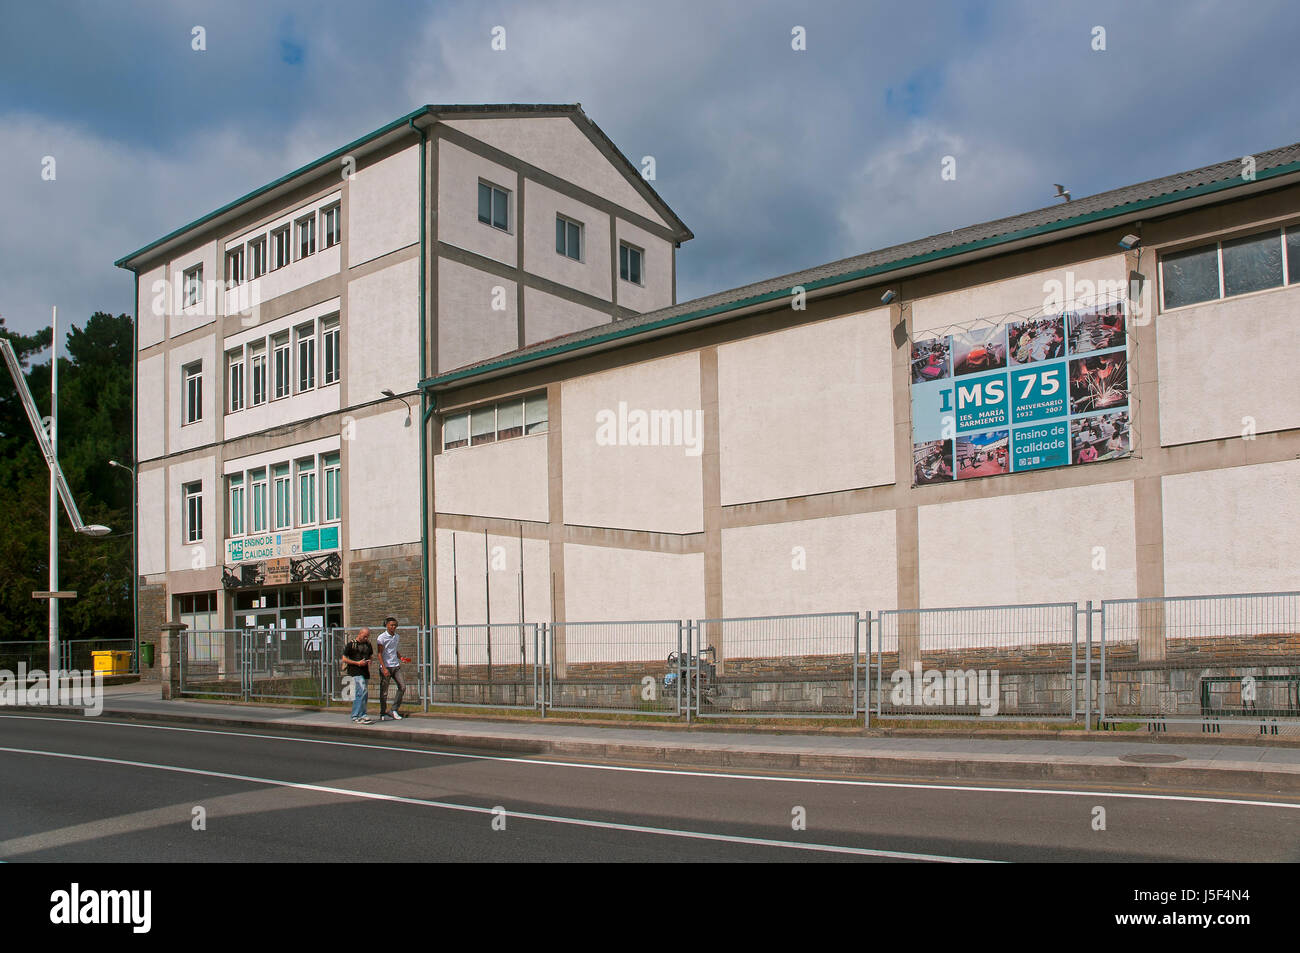 Secondary School Maria Sarmiento, Viveiro, Lugo province, Region of Galicia, Spain, Europe - Stock Image